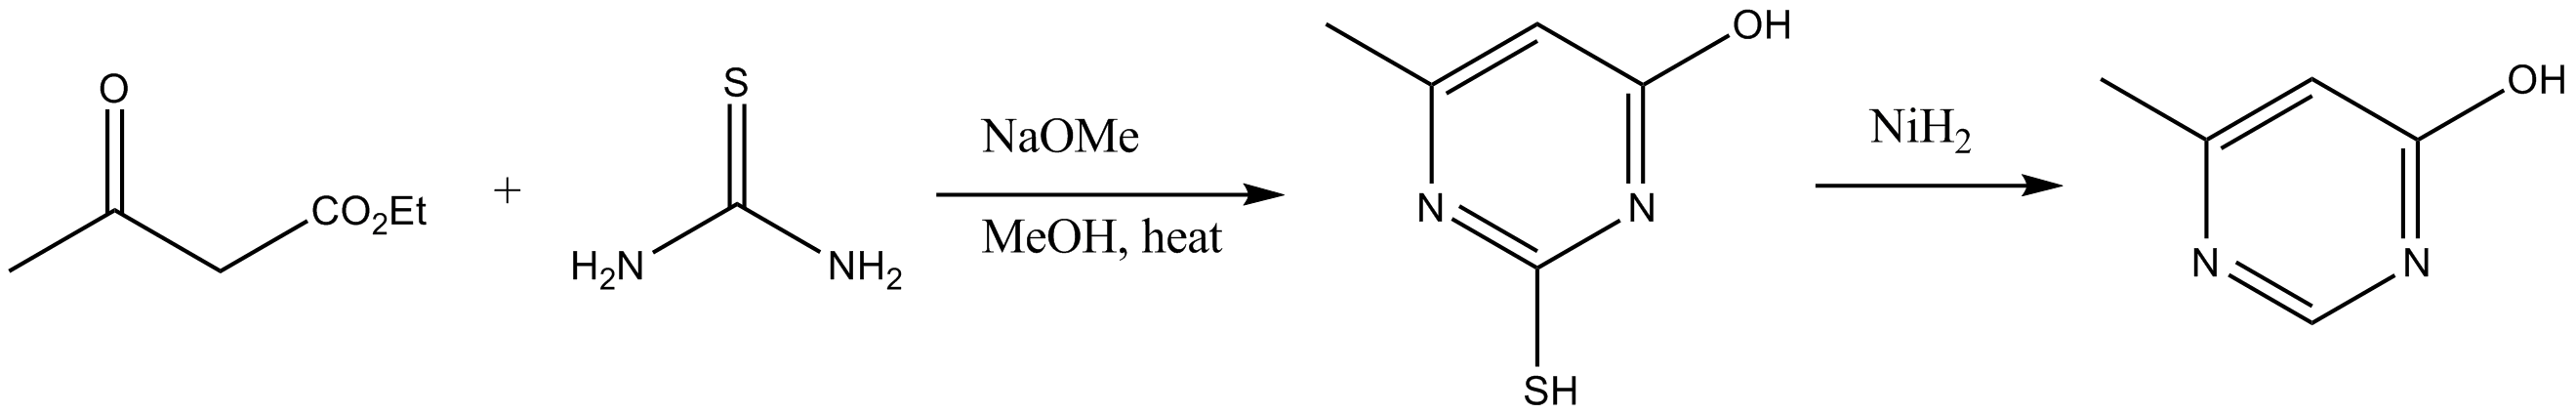 pyrimidine derivatives